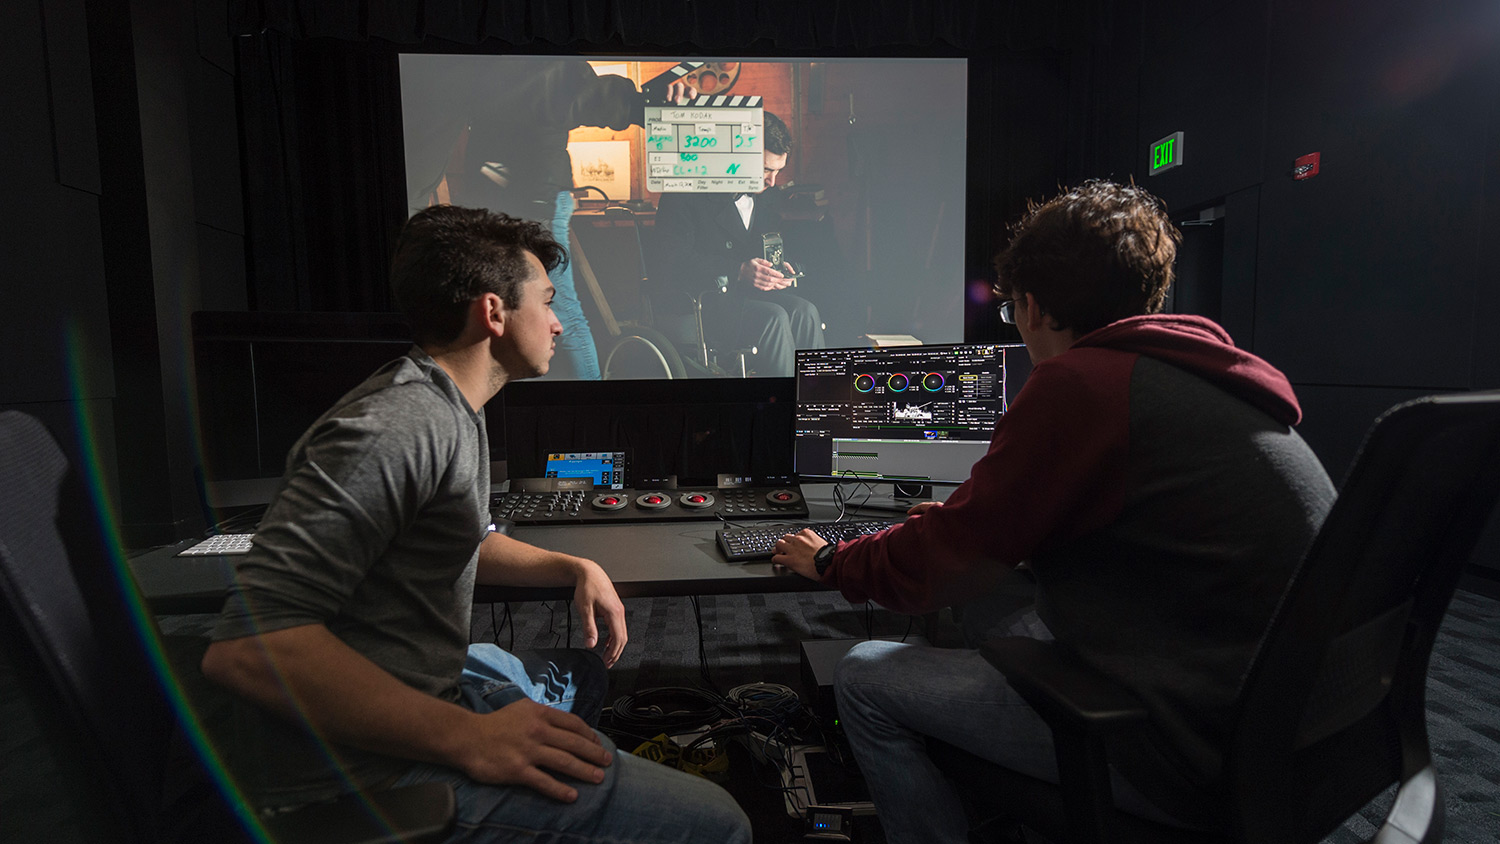 Two students sit in dark room in front of controls as screen plays movie in background